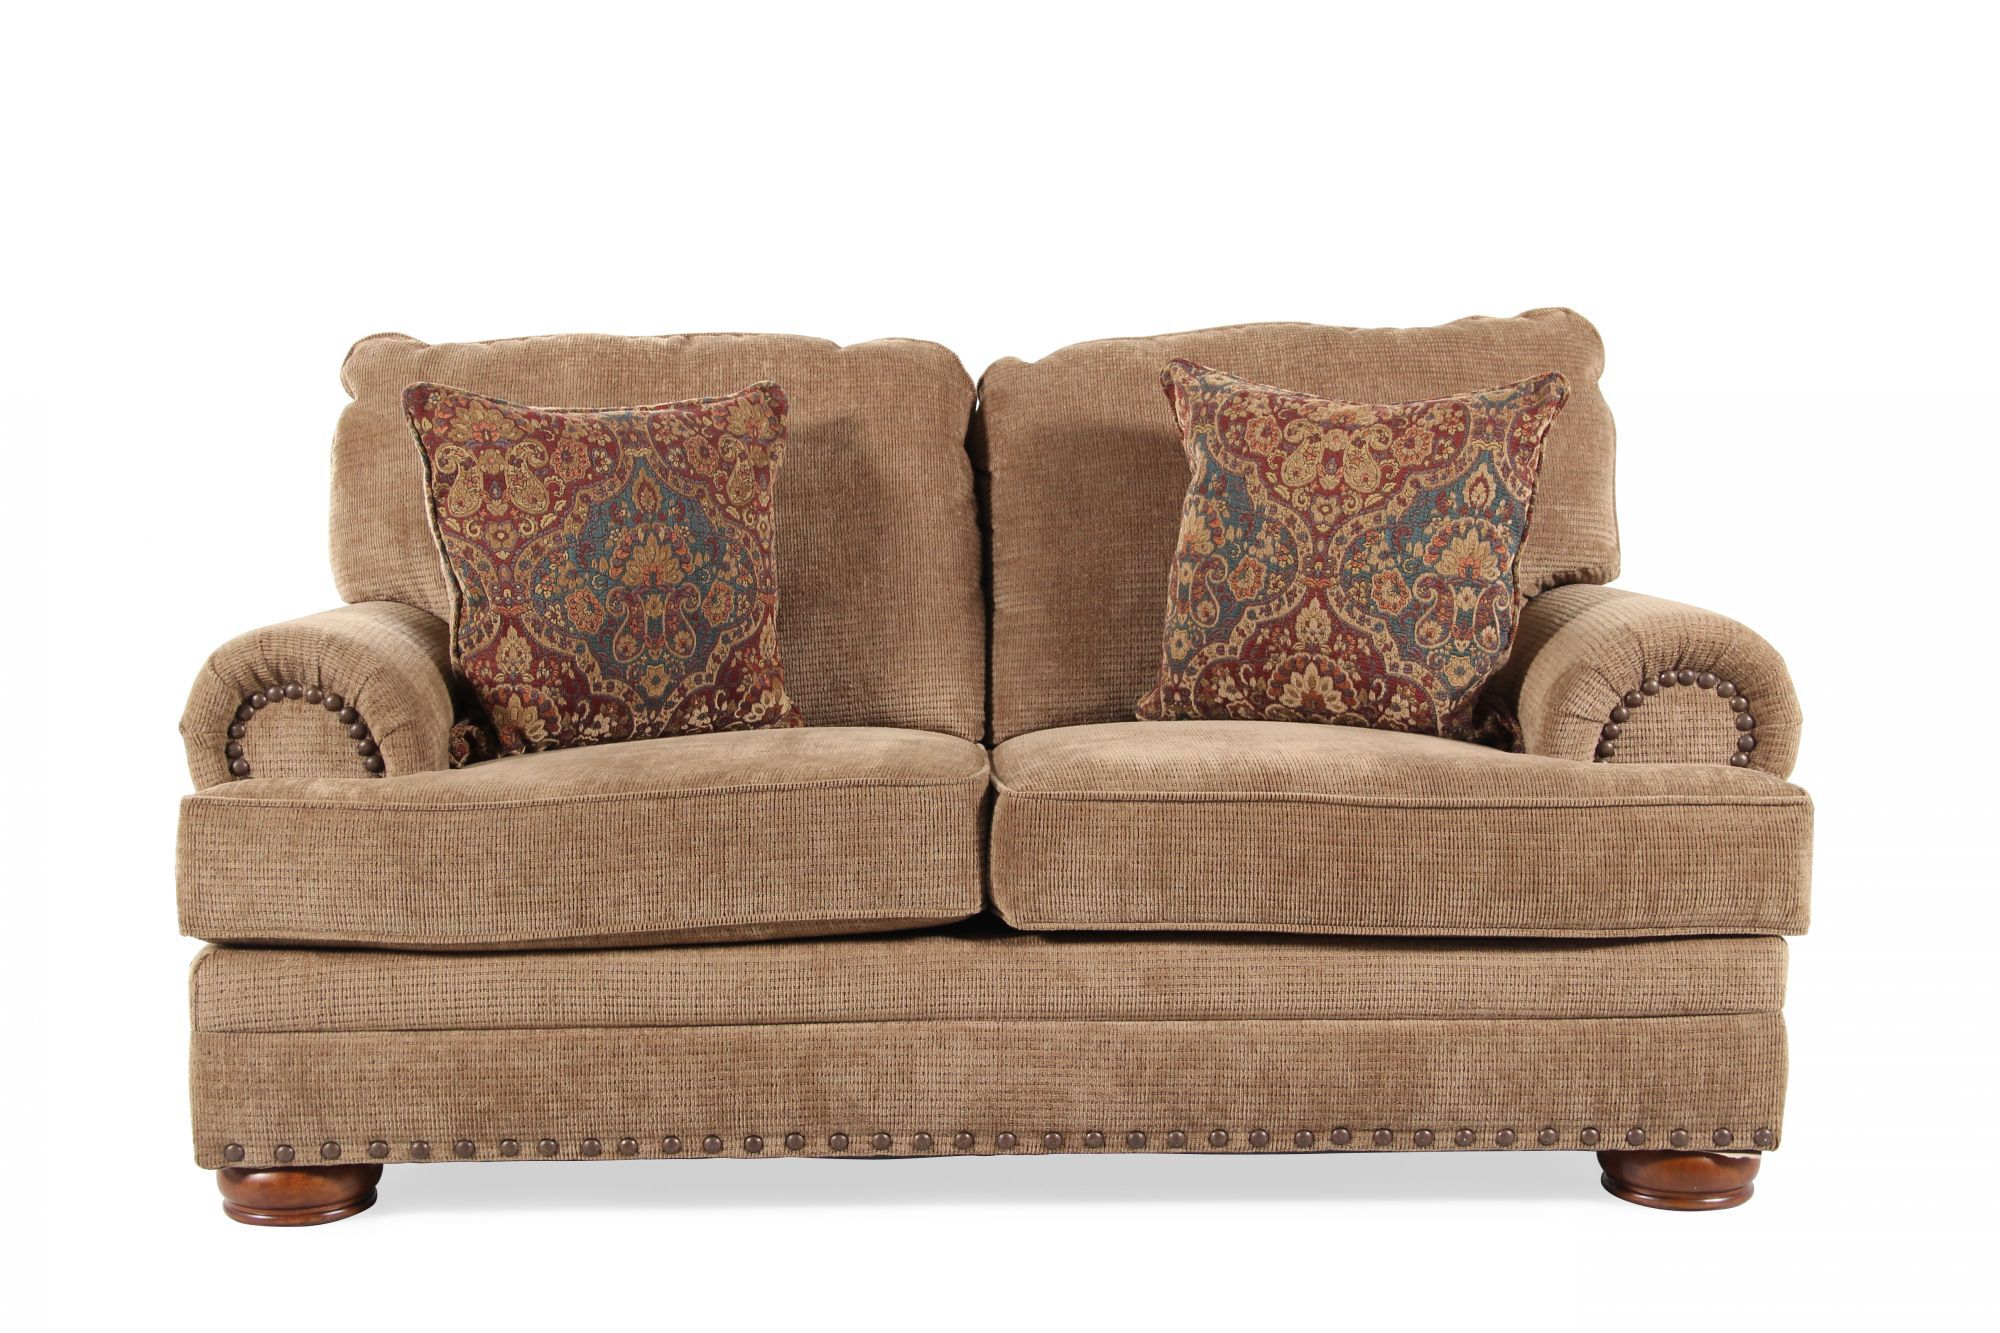 cooper sofa by lane cute sofas for sale furniture stationary